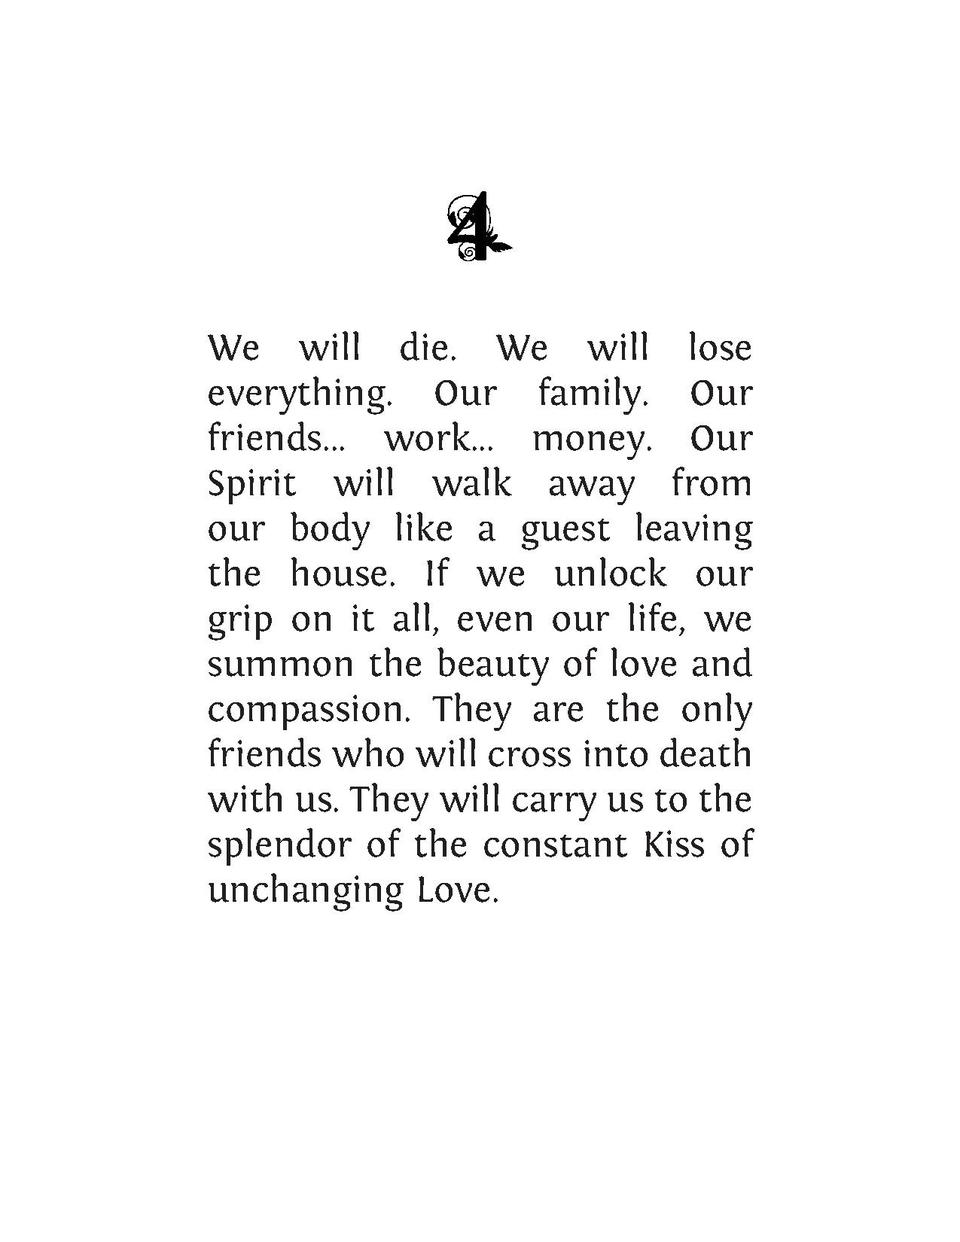 We will die. We will lose everything. Our family. Our friends... work... money. Our Spirit will walk away from our body li...